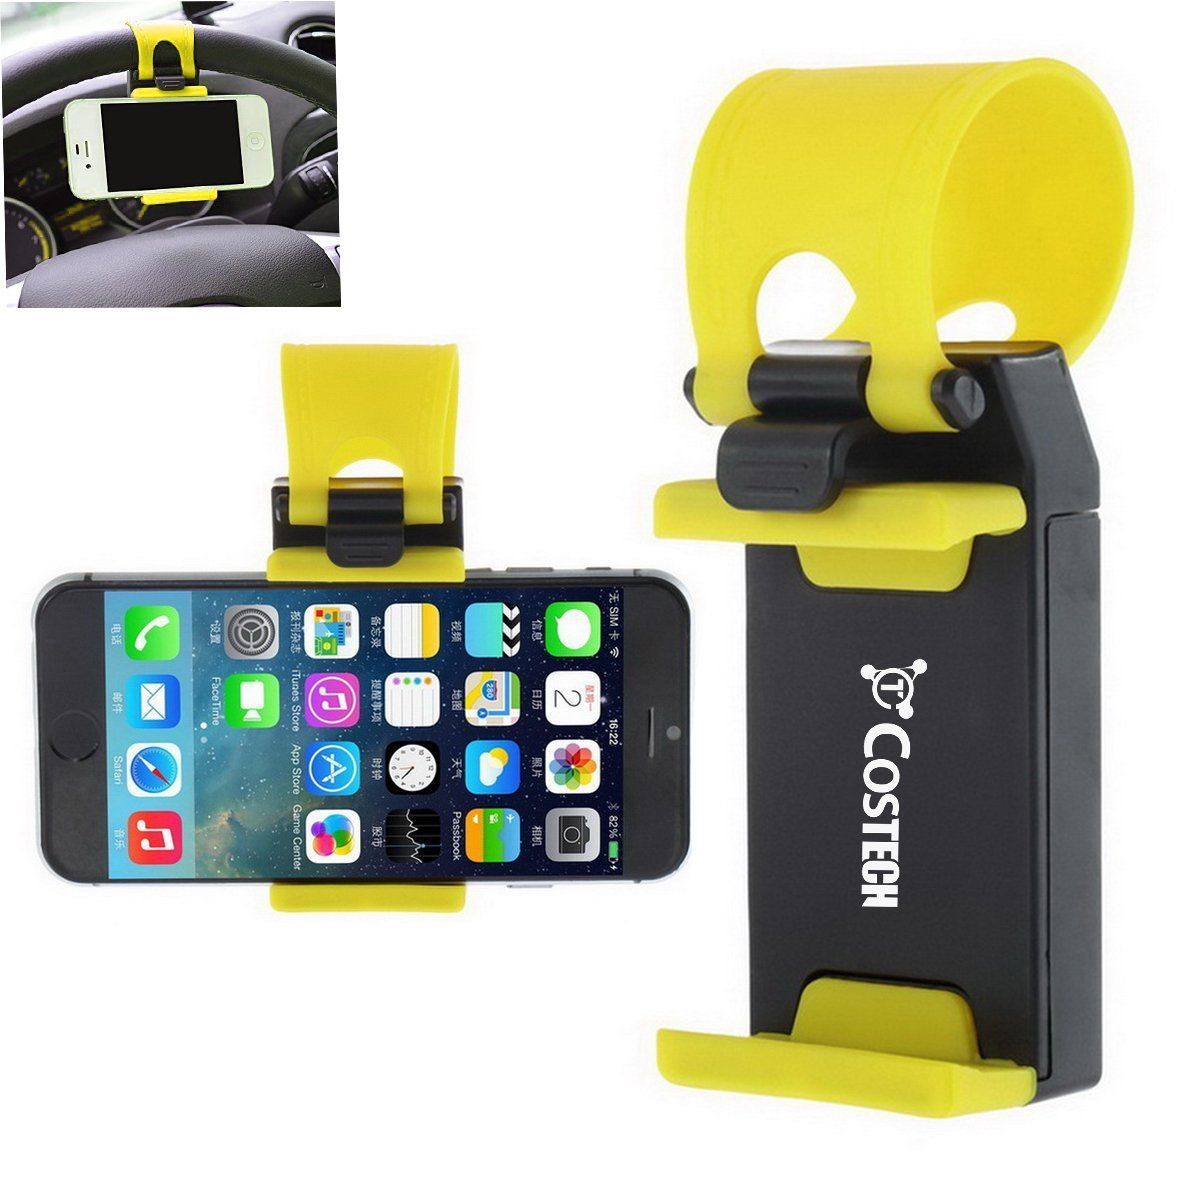 Car Mount, Costech Steering Wheel Stand GPS Rubber Band Holder for Iphone 6,6s,6plus,5s ,Samsung Galaxy S6,S5,Note 5,4,3,Other Not More than 5.5 Inch Moblie Phone (Yellow)